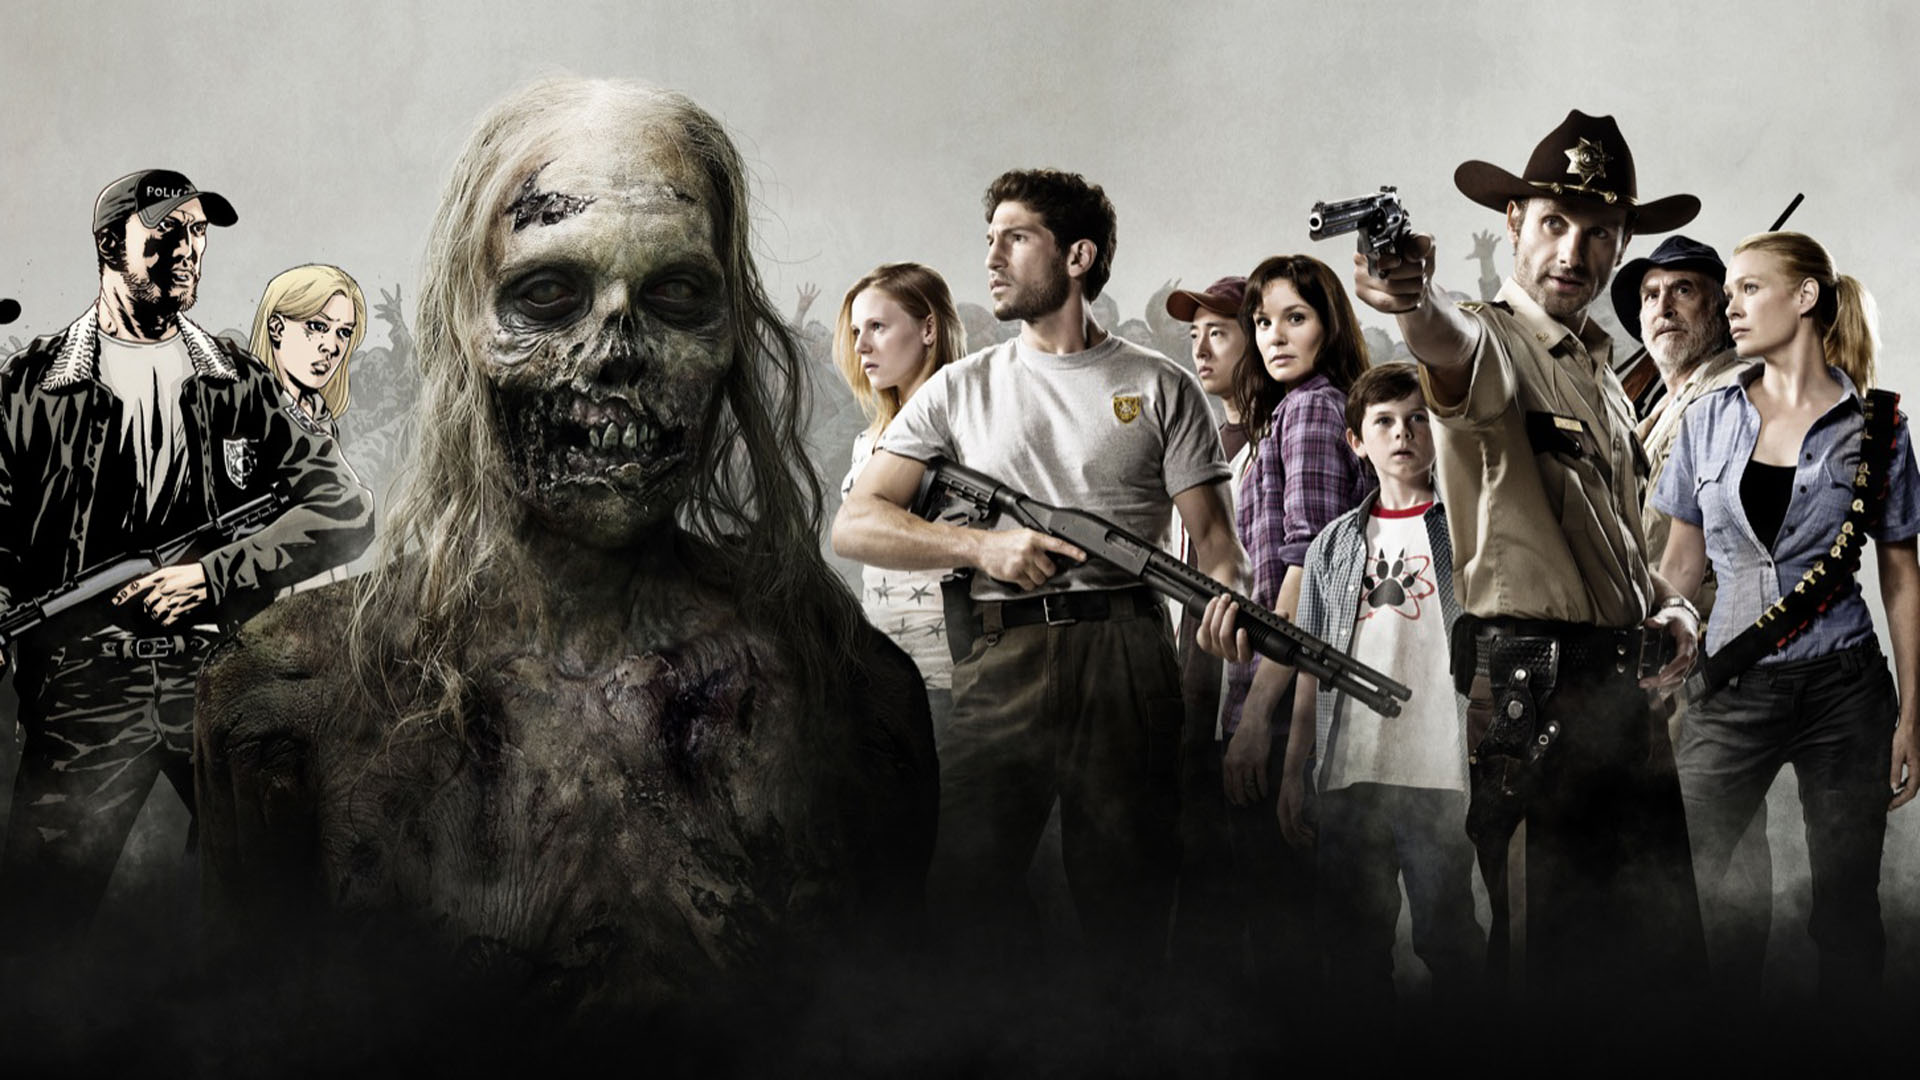 Walking Dead Wallpaper 1920x1080 - WallpaperSafari